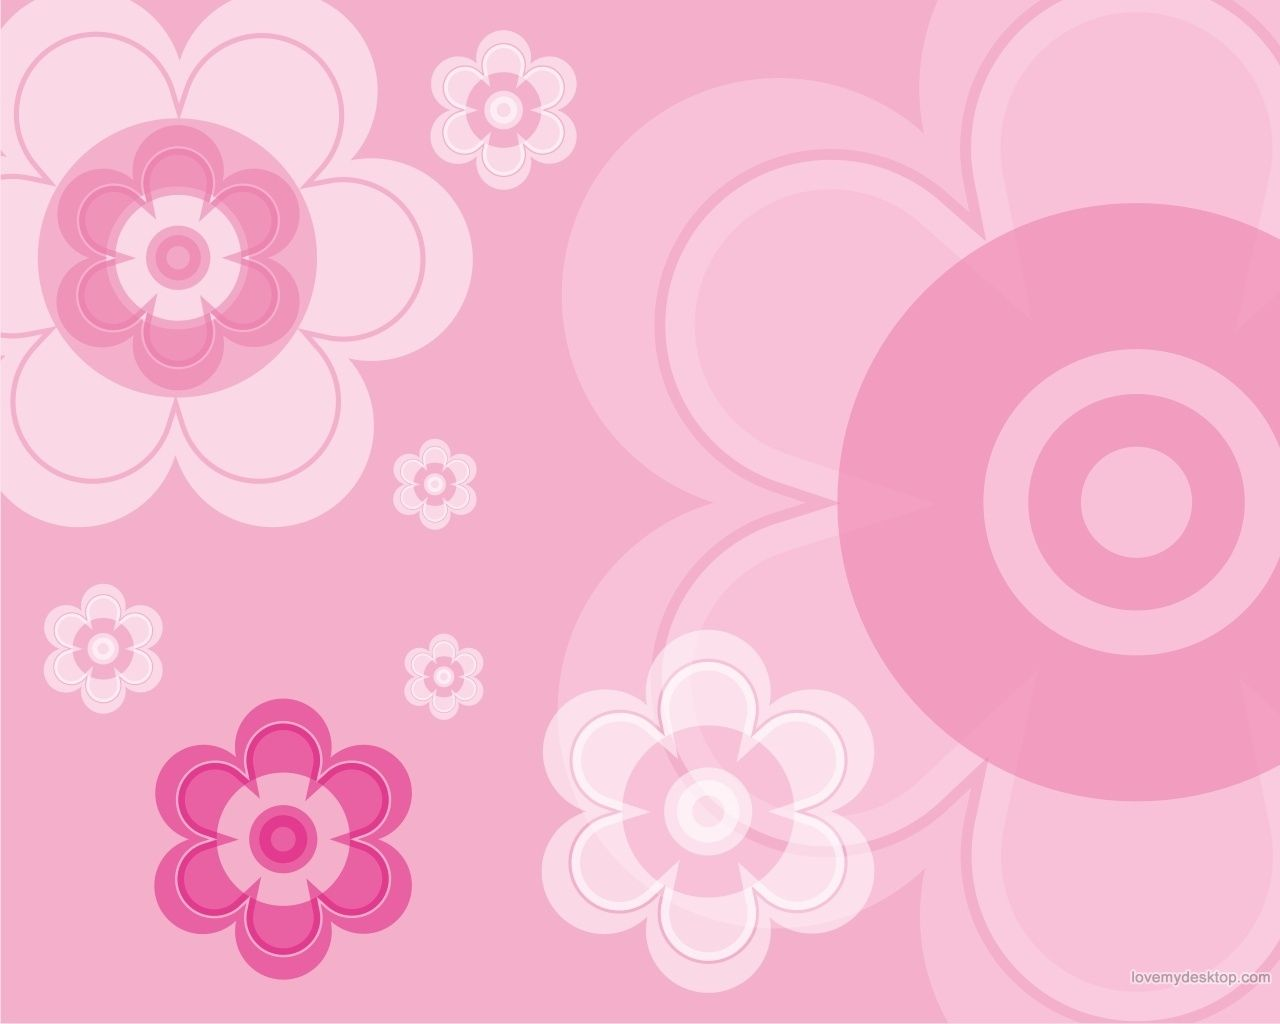 Wallpaper 7 Pink Hd Wallpapers Colorful Girly Backgrounds Cute Wallpapers Pink Wallpaper Desktop Paper Background Design